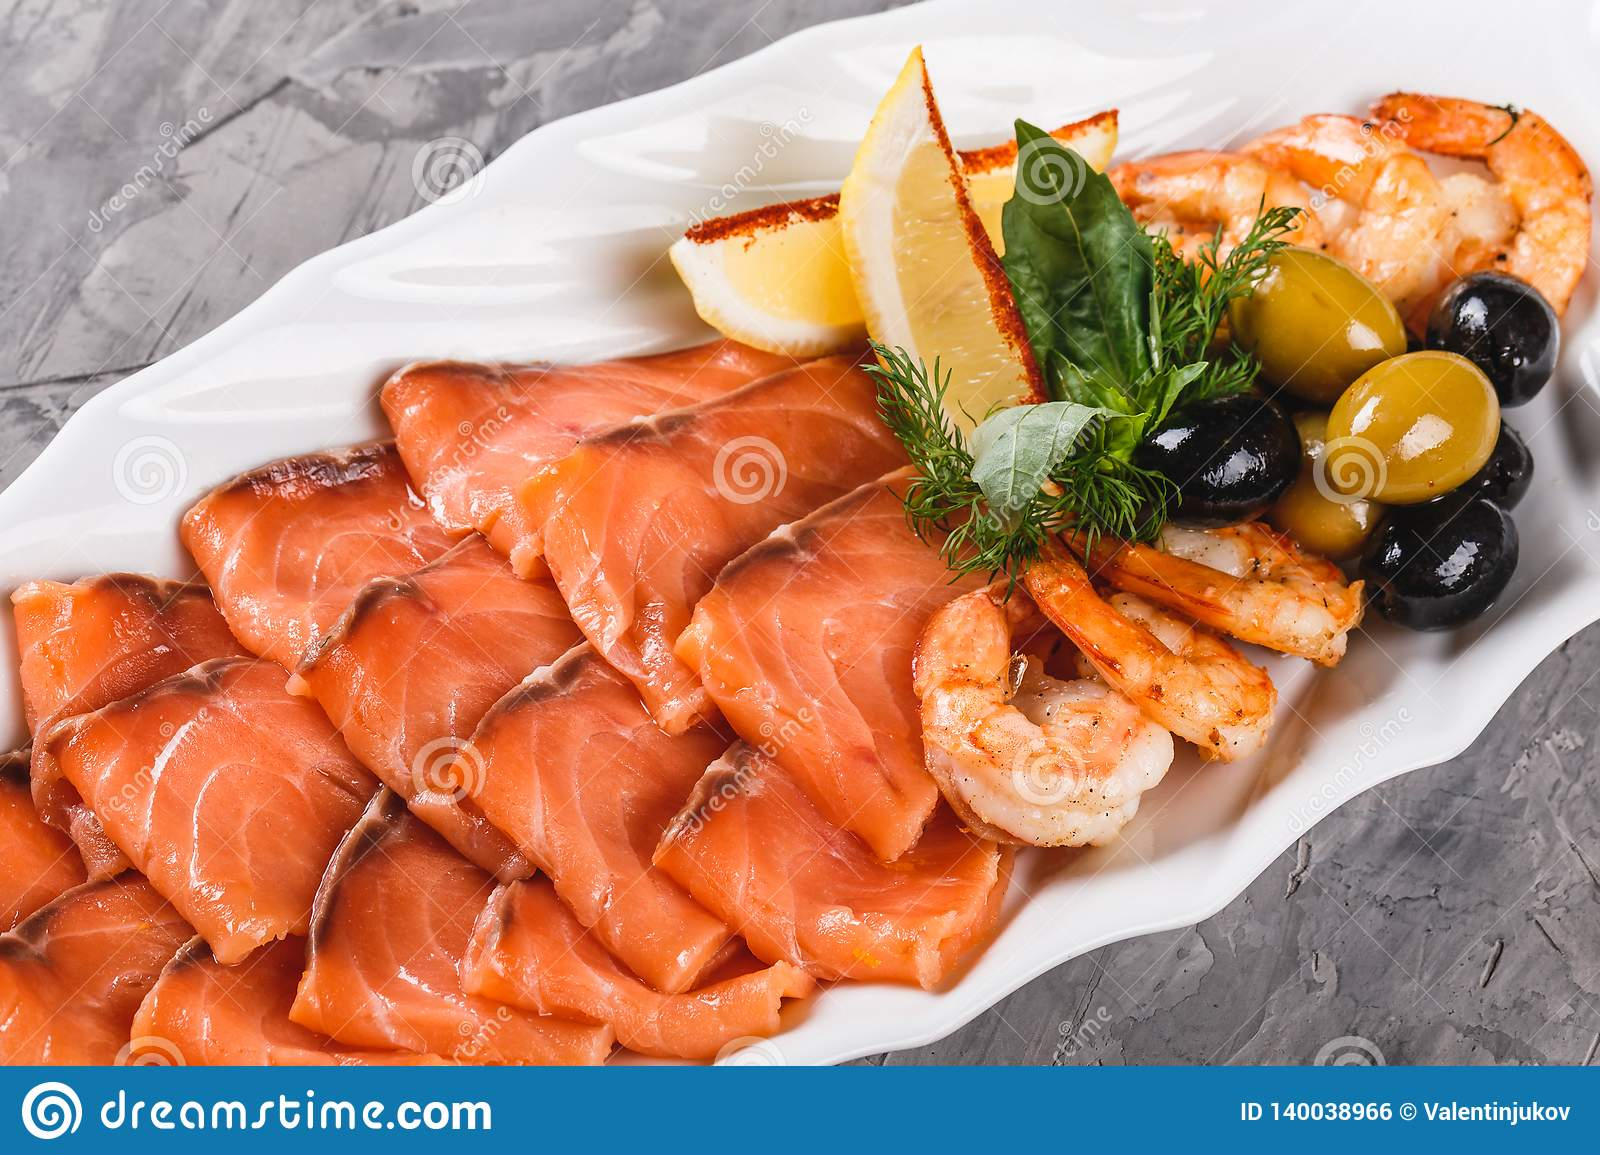 Seafood Platter With Salmon Slice Shrimp Slices Fish Fillet Decorated With Olives And Lemon In Plate Over Rustic Background Stock Photo Image Of Assorted Green 140038966